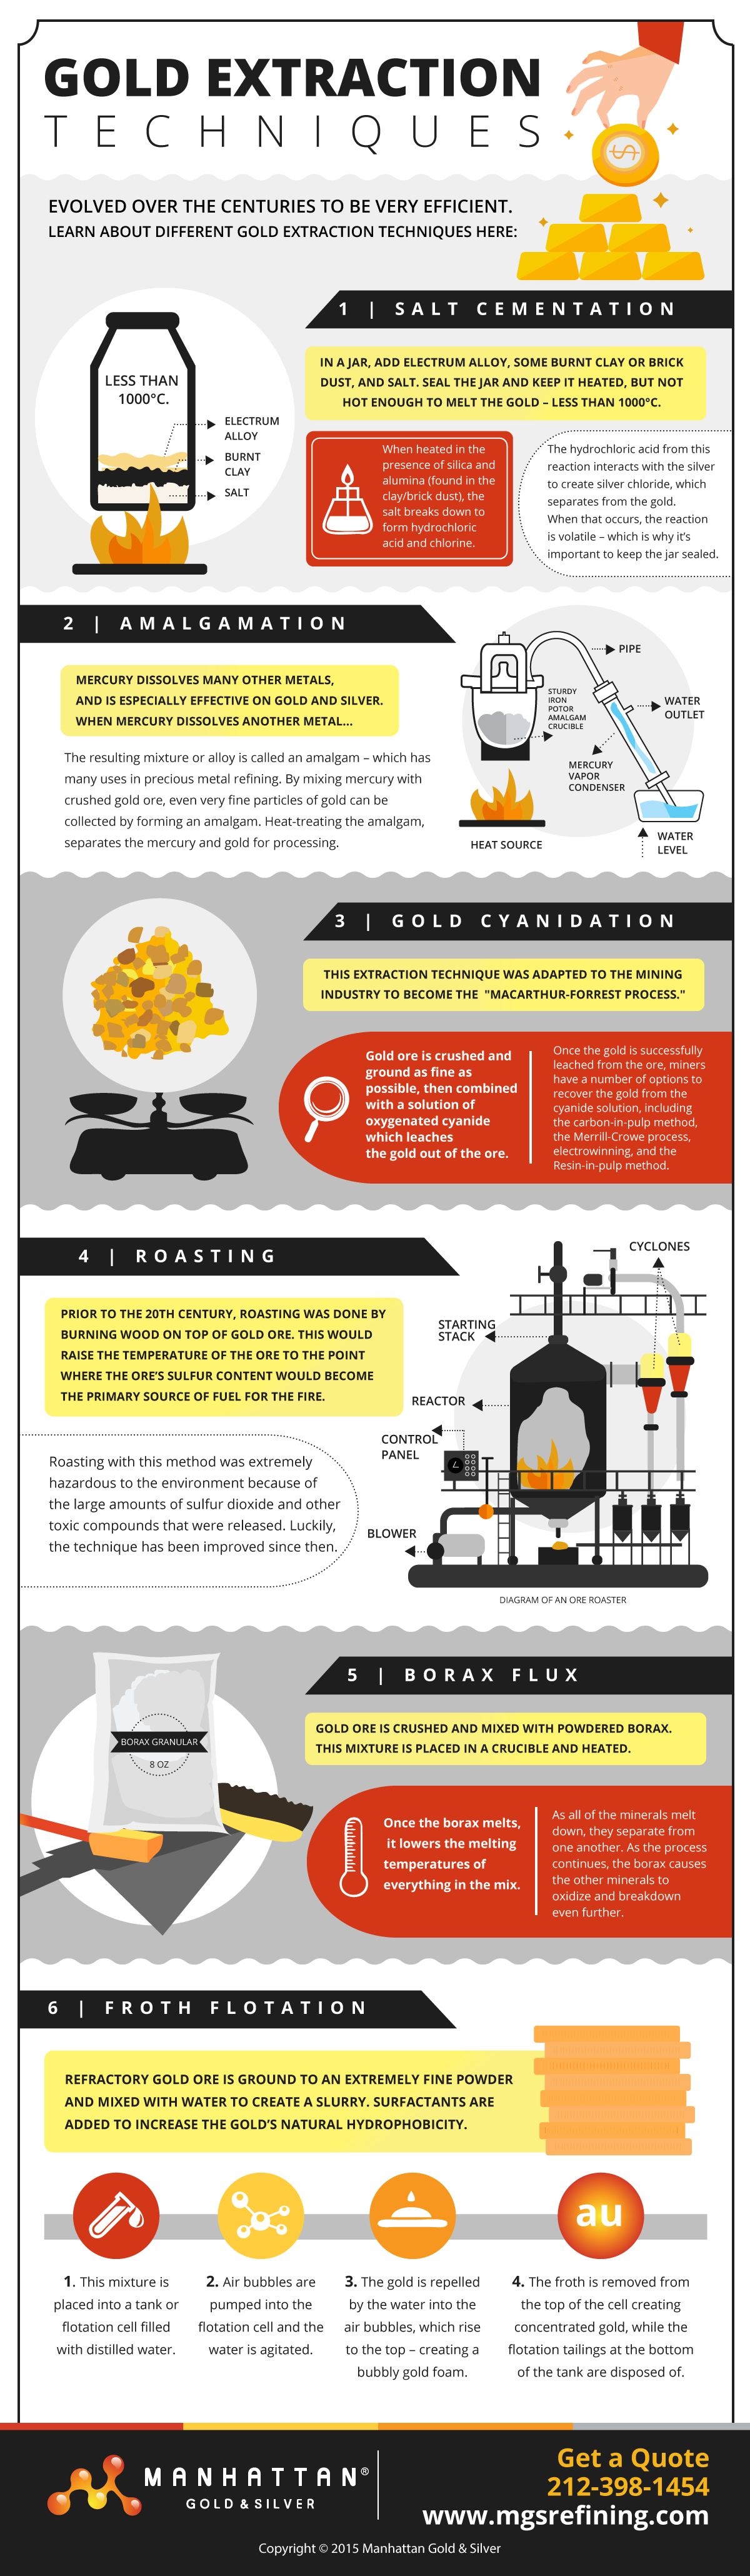 Gold extraction infographic – MGS